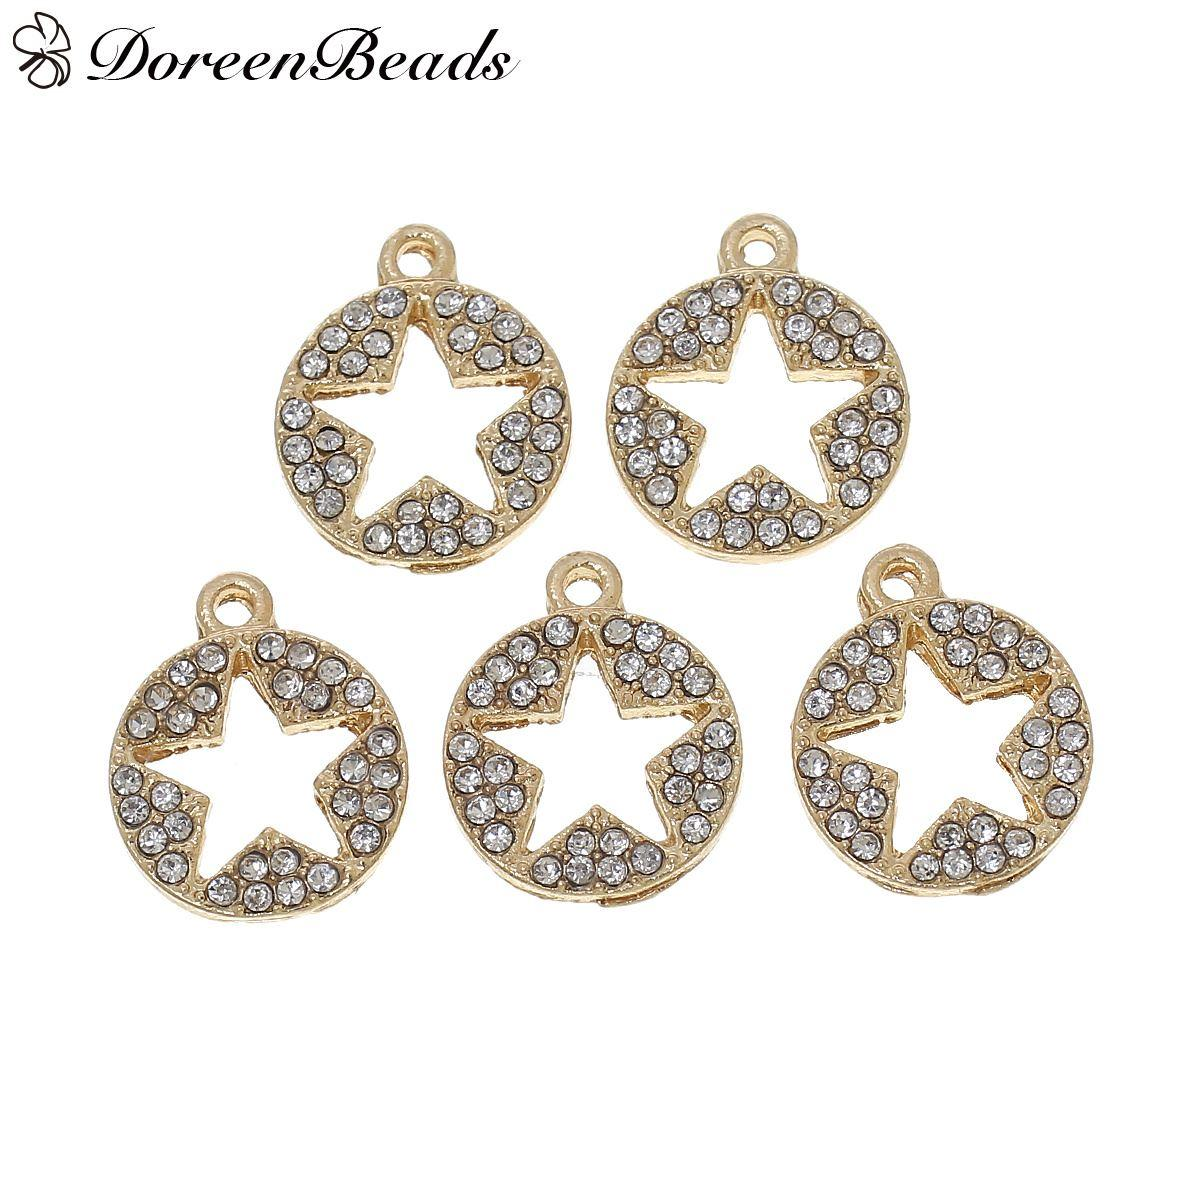 Charms Round Gold Plated Pentagram Star Hollow Carved Clear Rhinestone  15mm5 8X 13mm4 8 b916d9df18b5